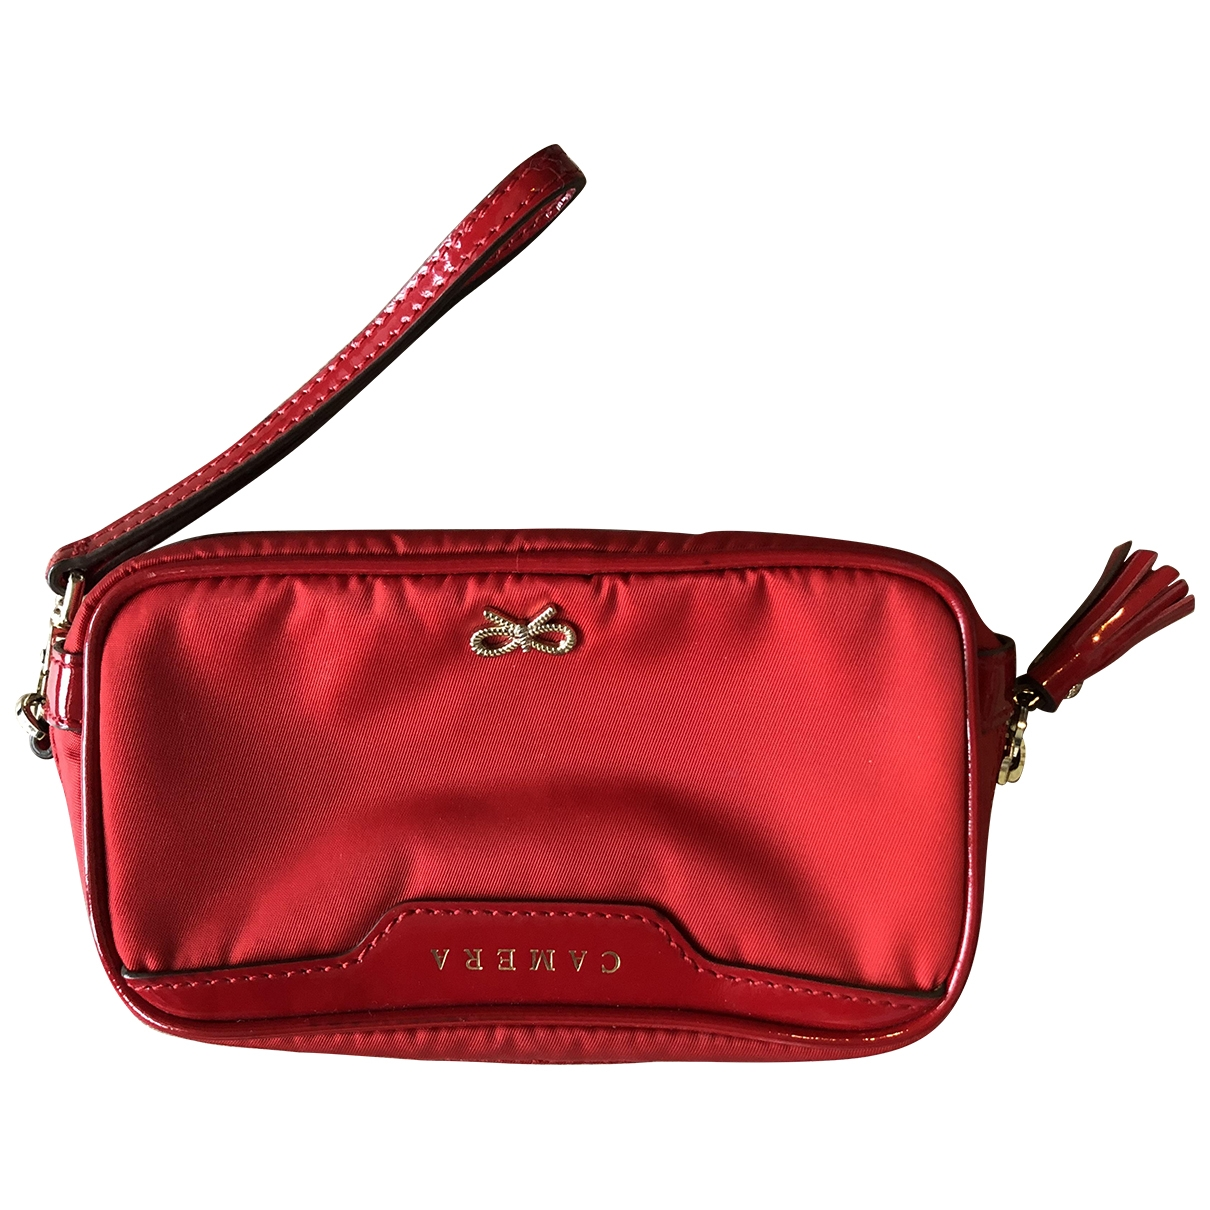 Anya Hindmarch - Petite maroquinerie   pour femme en toile - rouge